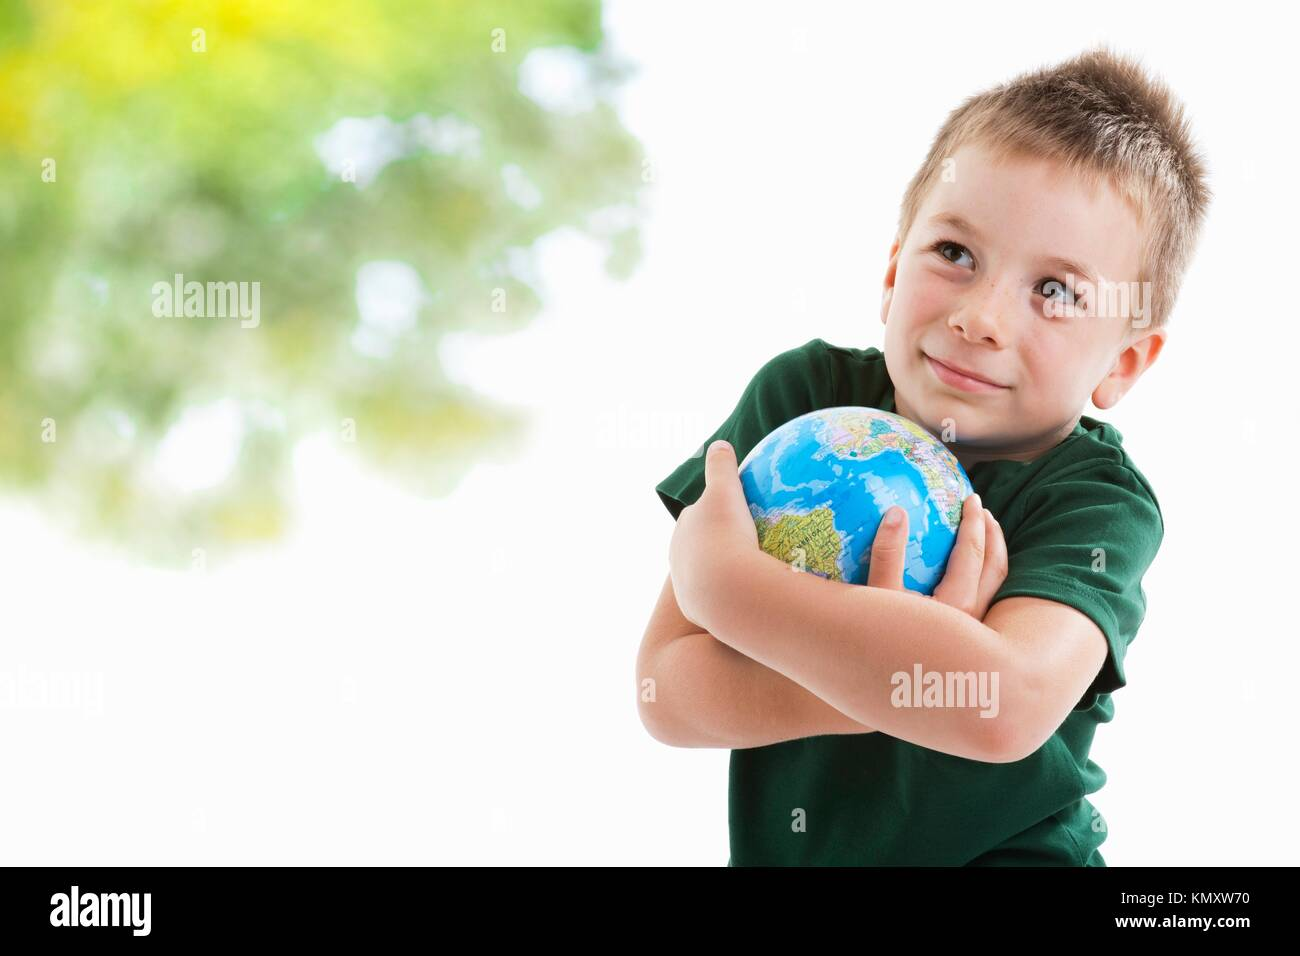 Little boy embracing the globe to protect it Stock Photo